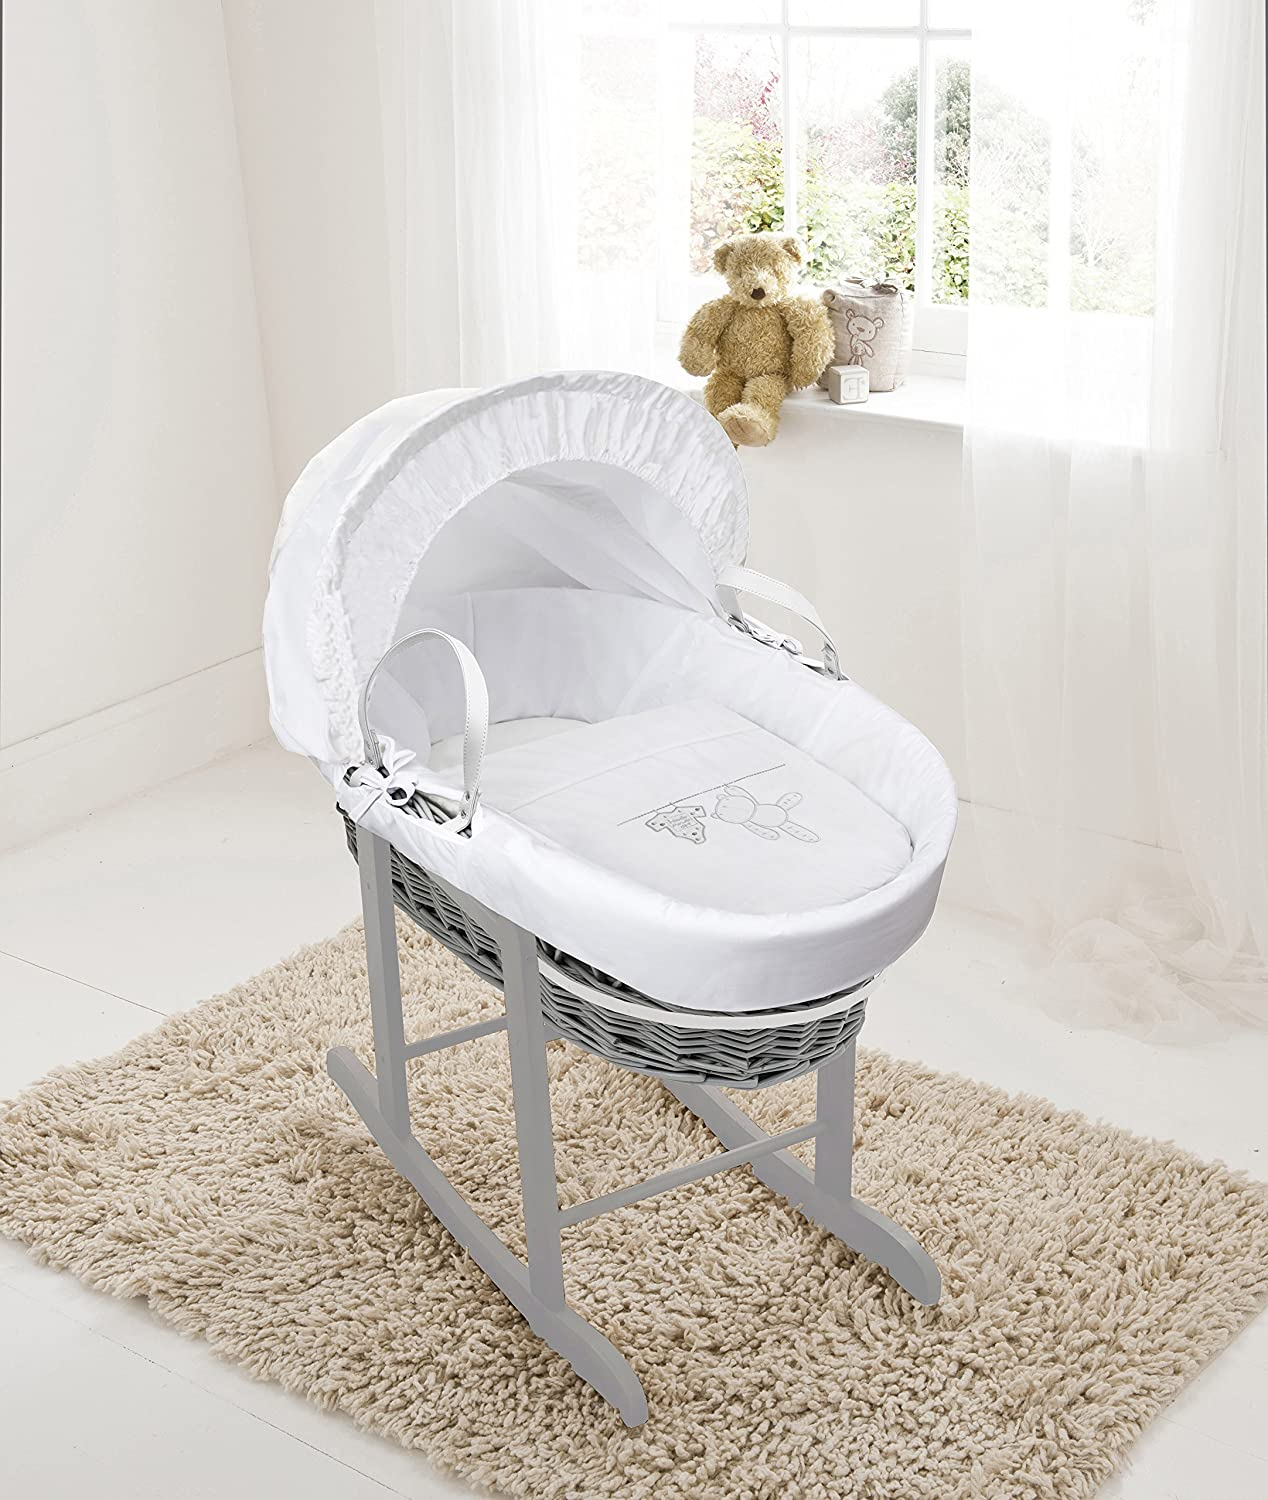 White Teddy Wash Day On Grey Wicker Moses Basket & Deluxe Dove Grey Rocking Stand Elegant Baby